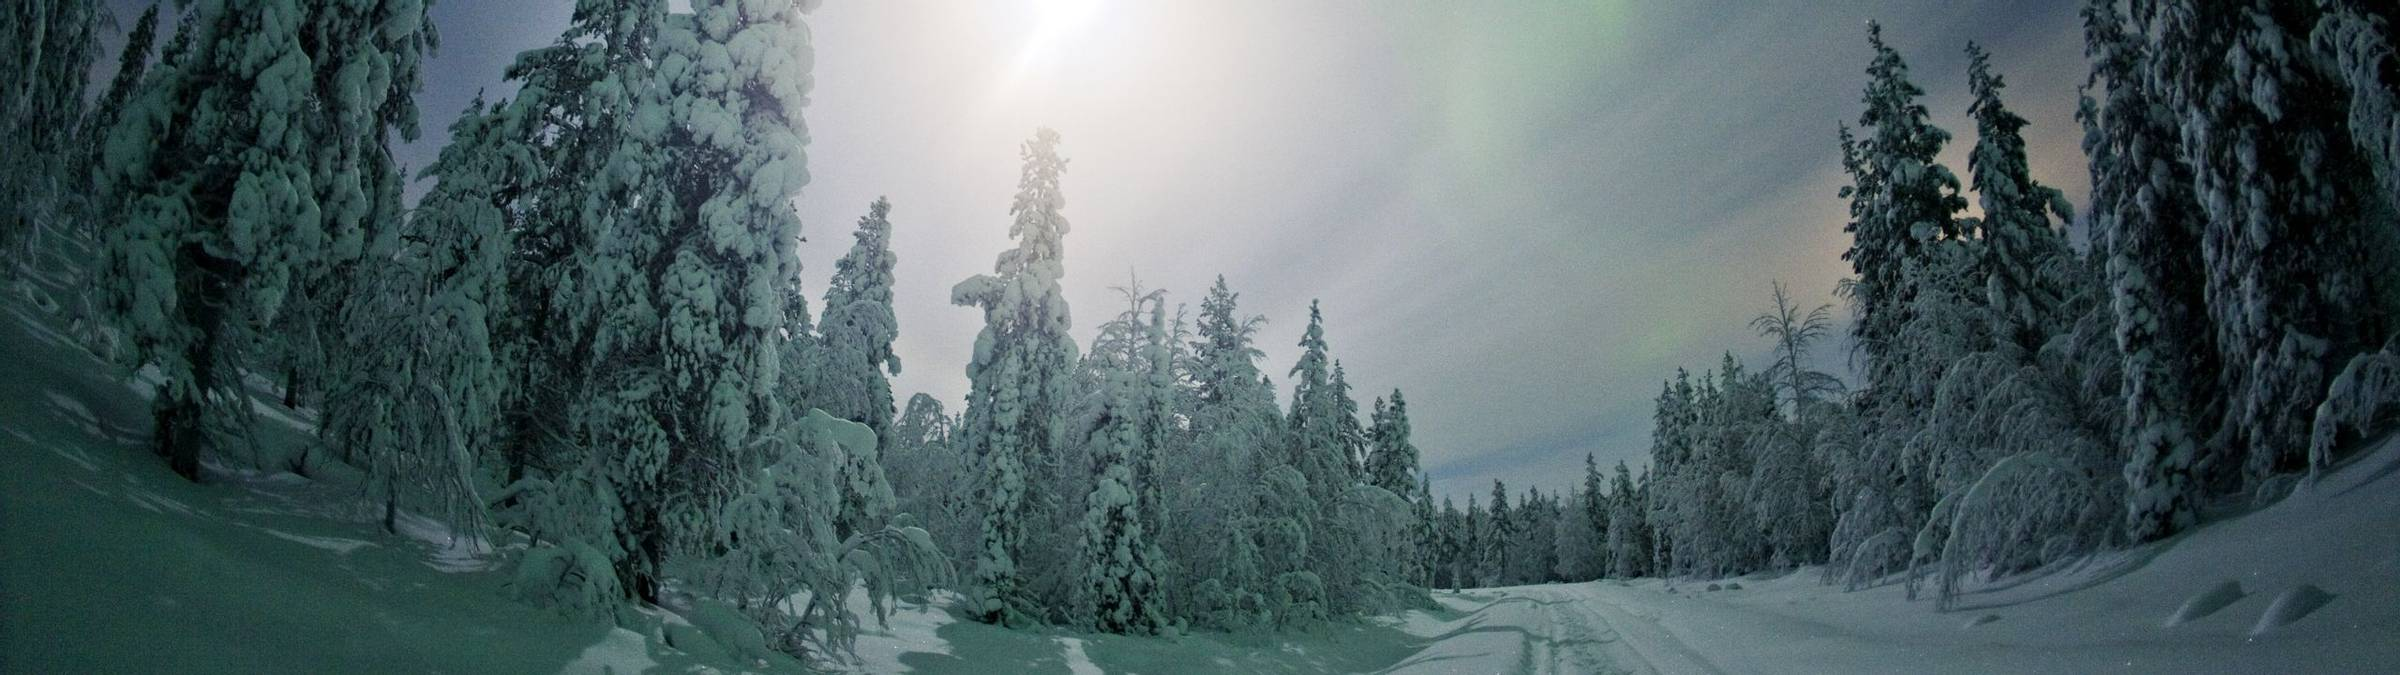 VisitFinlandAurora   Miikka Niemi And Flatlight Films